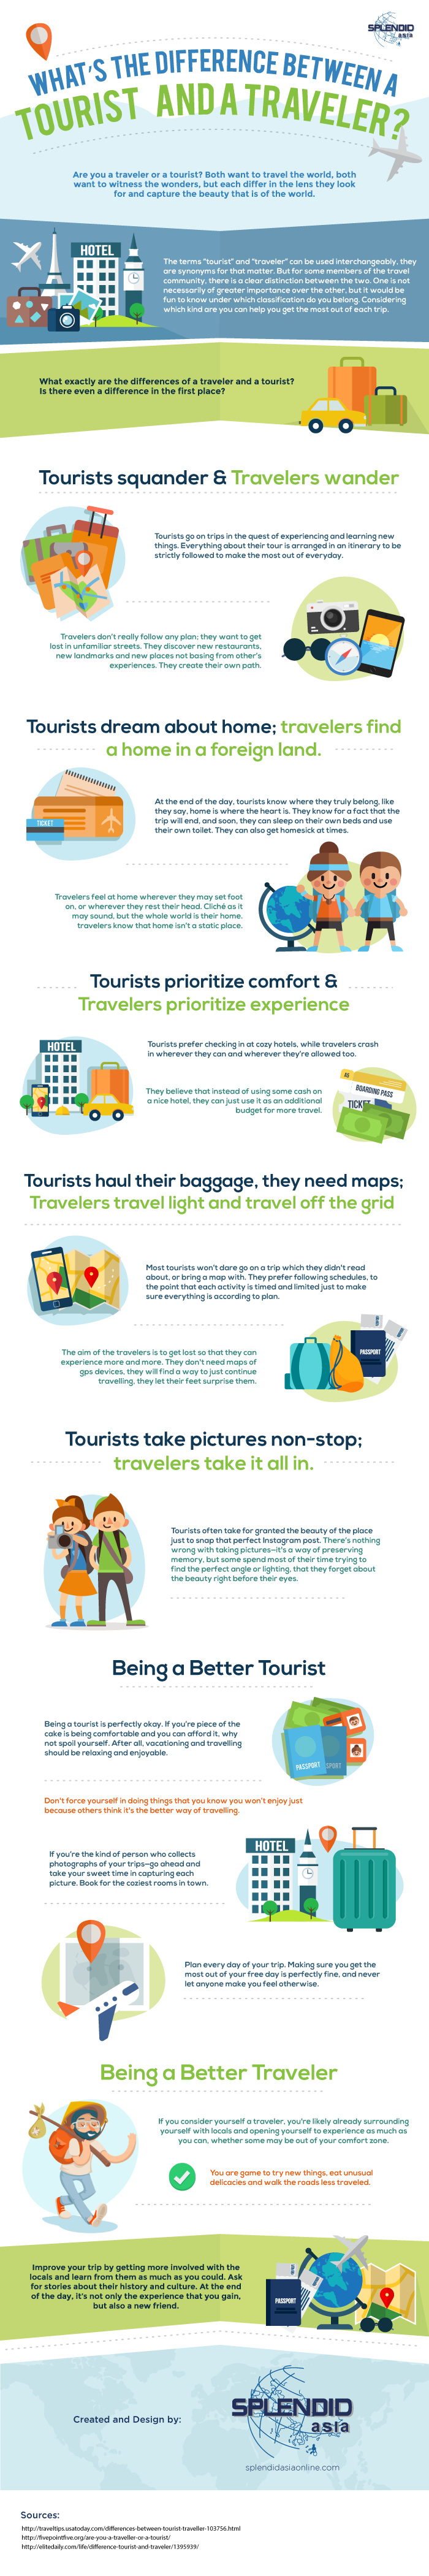 whats-the-difference-between-a-tourist-and-a-traveler-hd